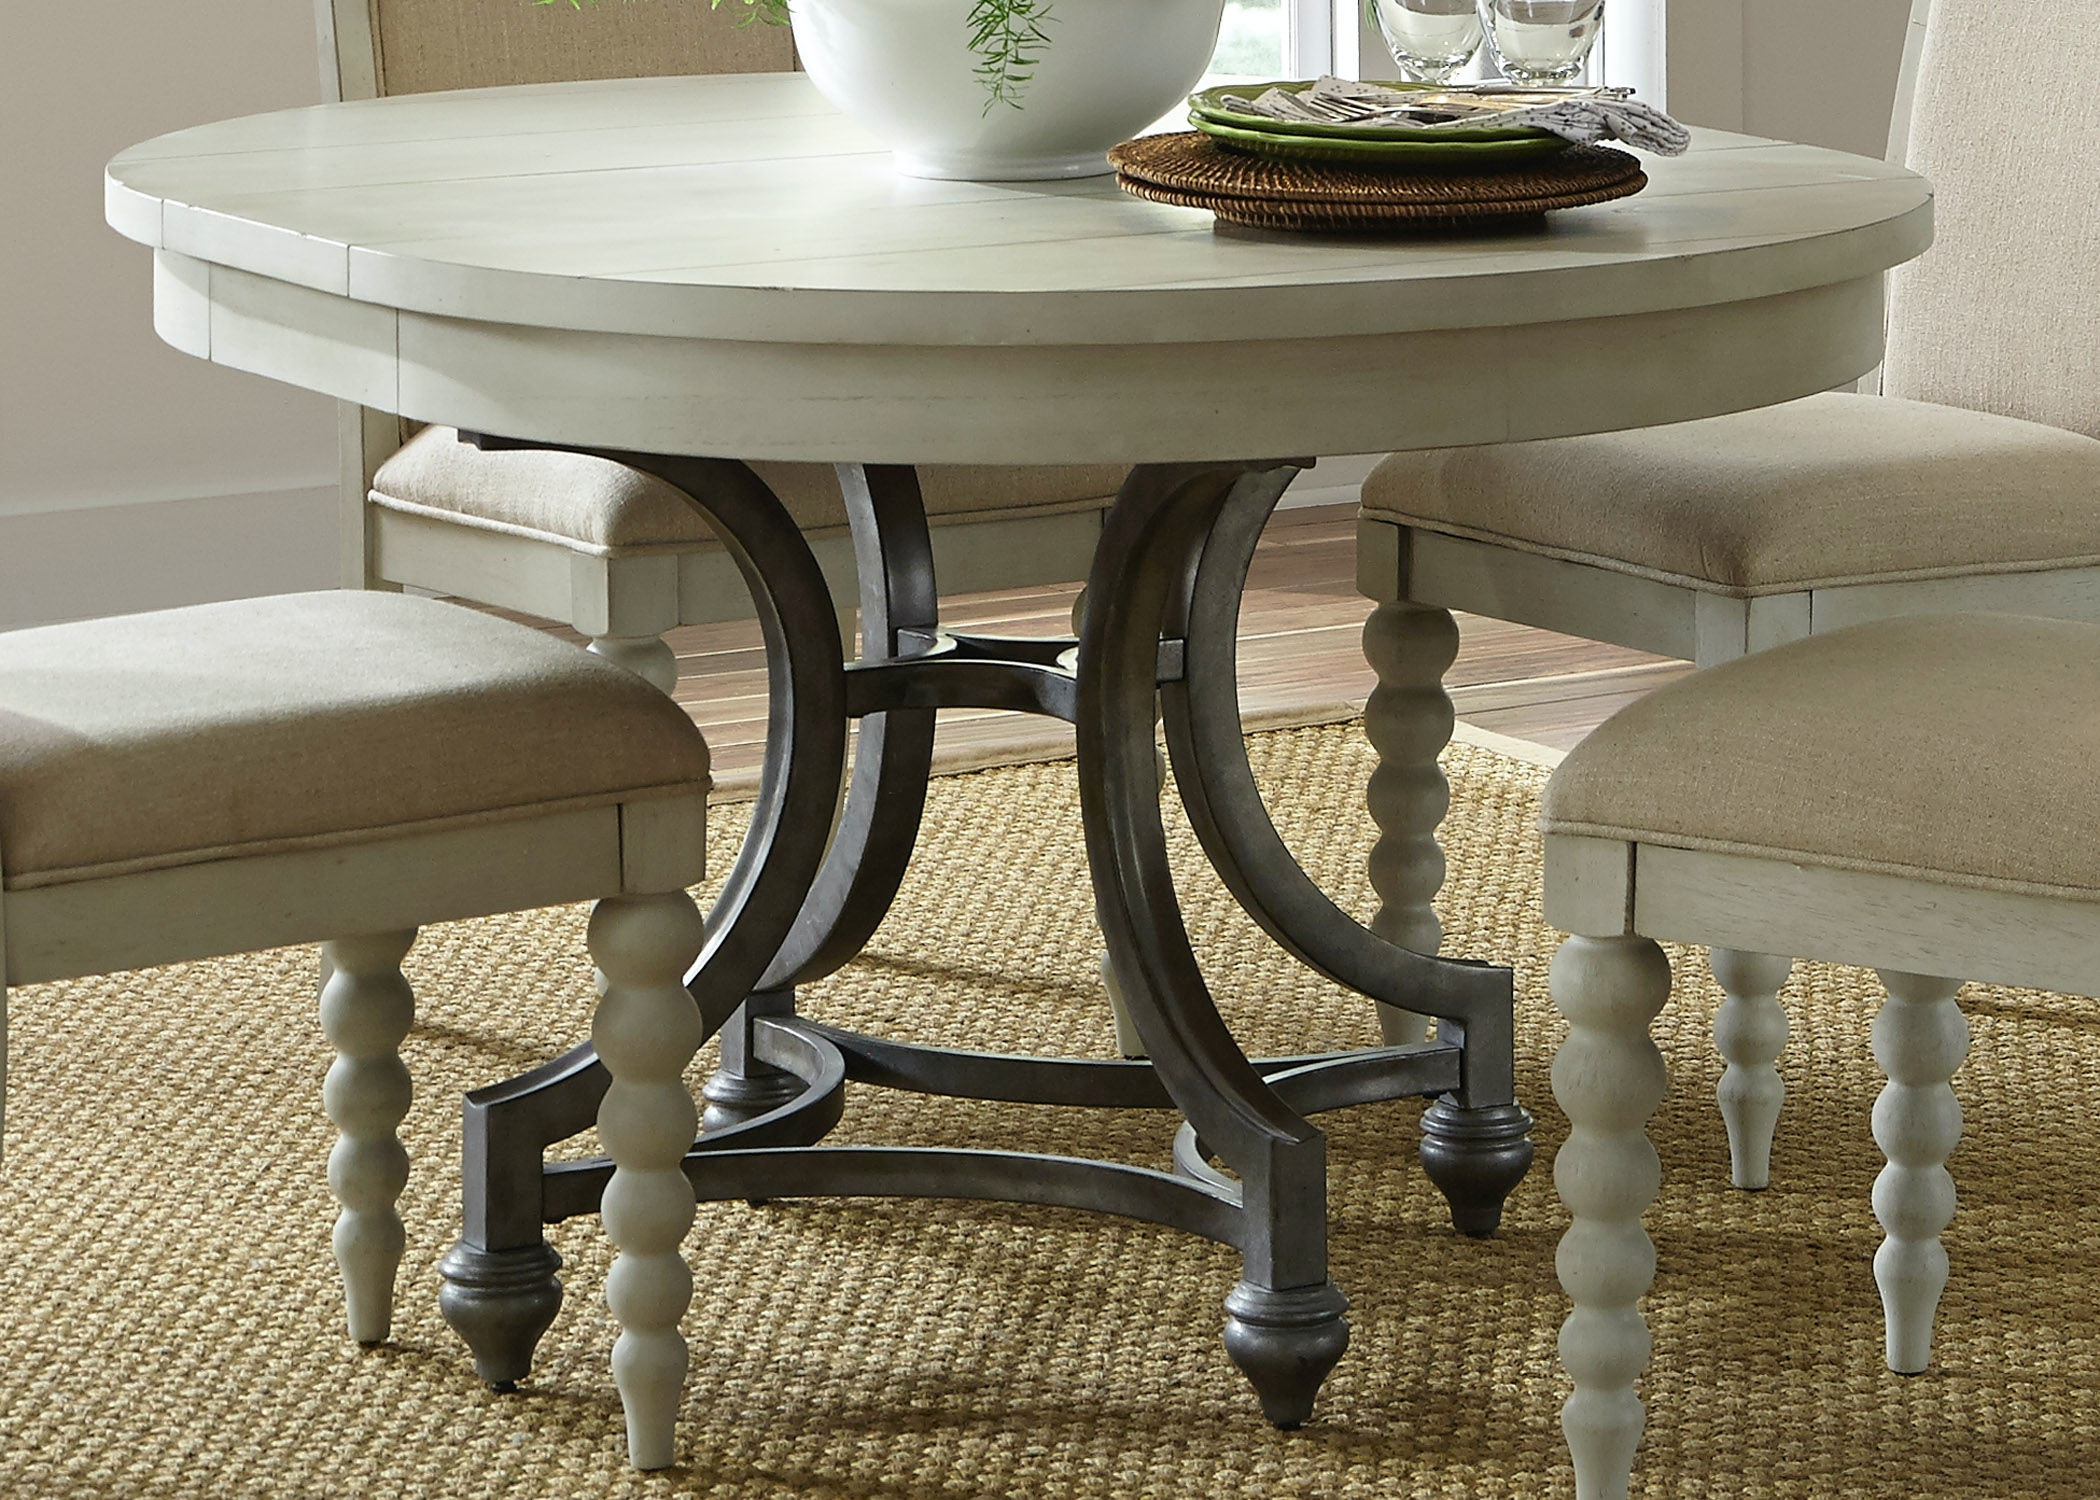 Gentil Liberty Furniture Dining Room Round Dining Table 731 T4254   Kaplans  Furniture   Elyria, OH